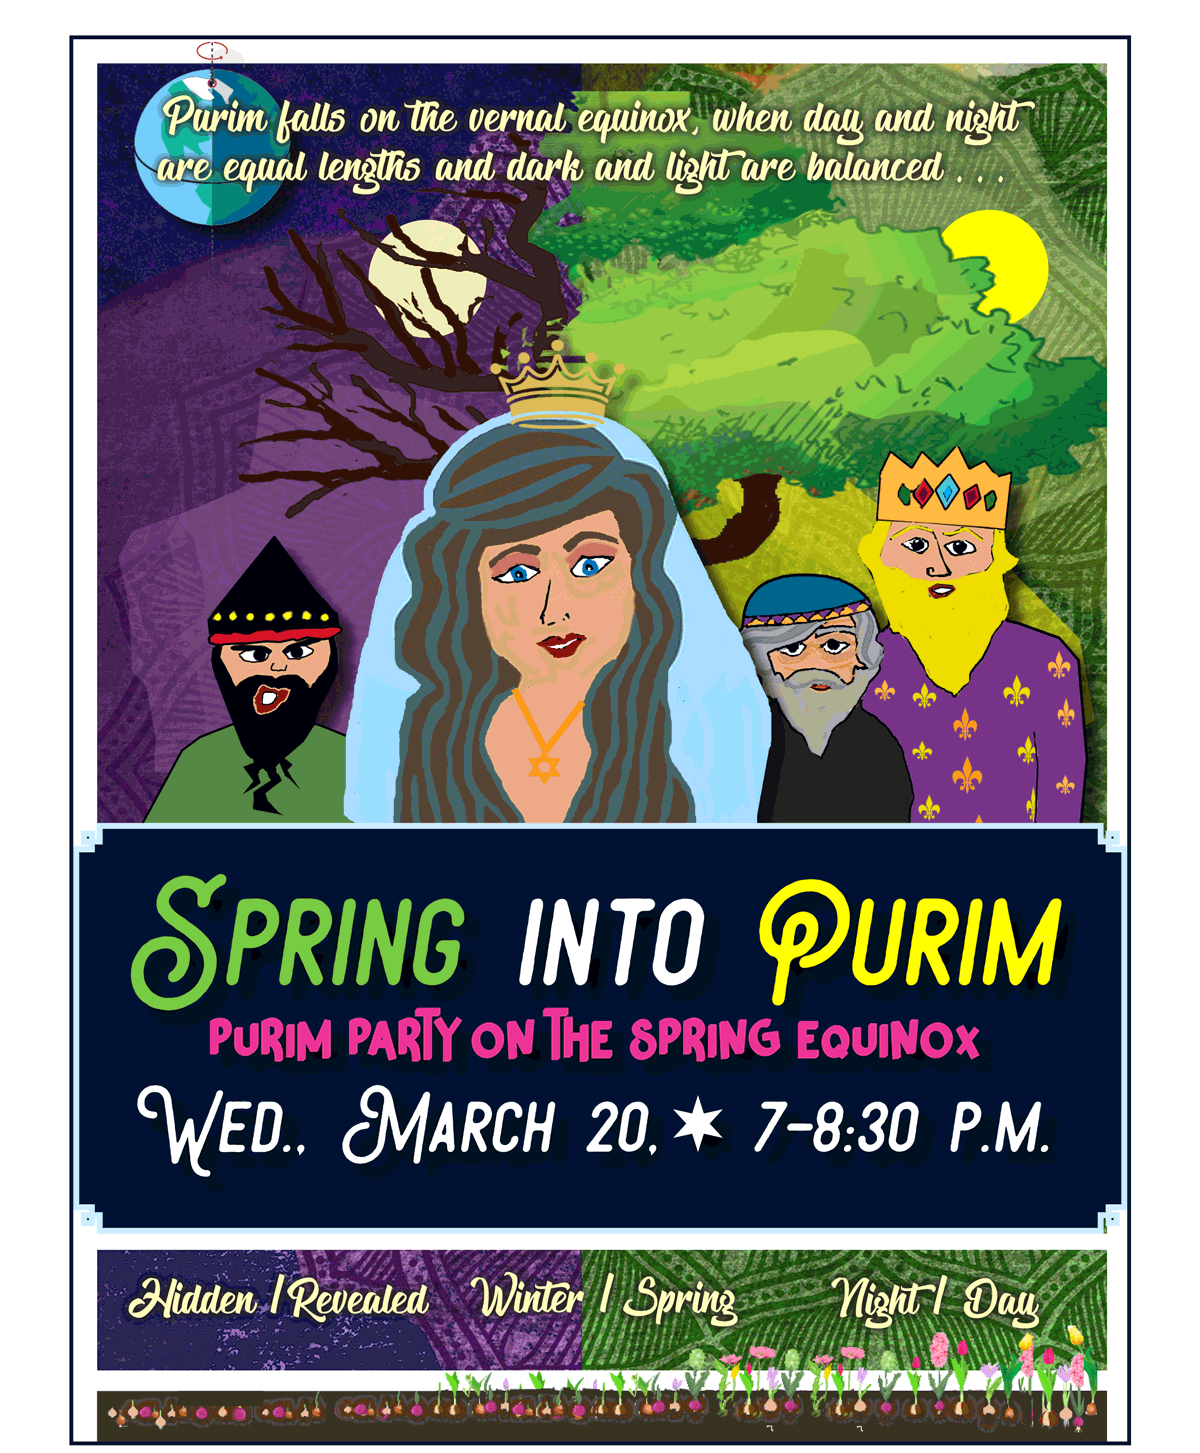 Purim Party March 20